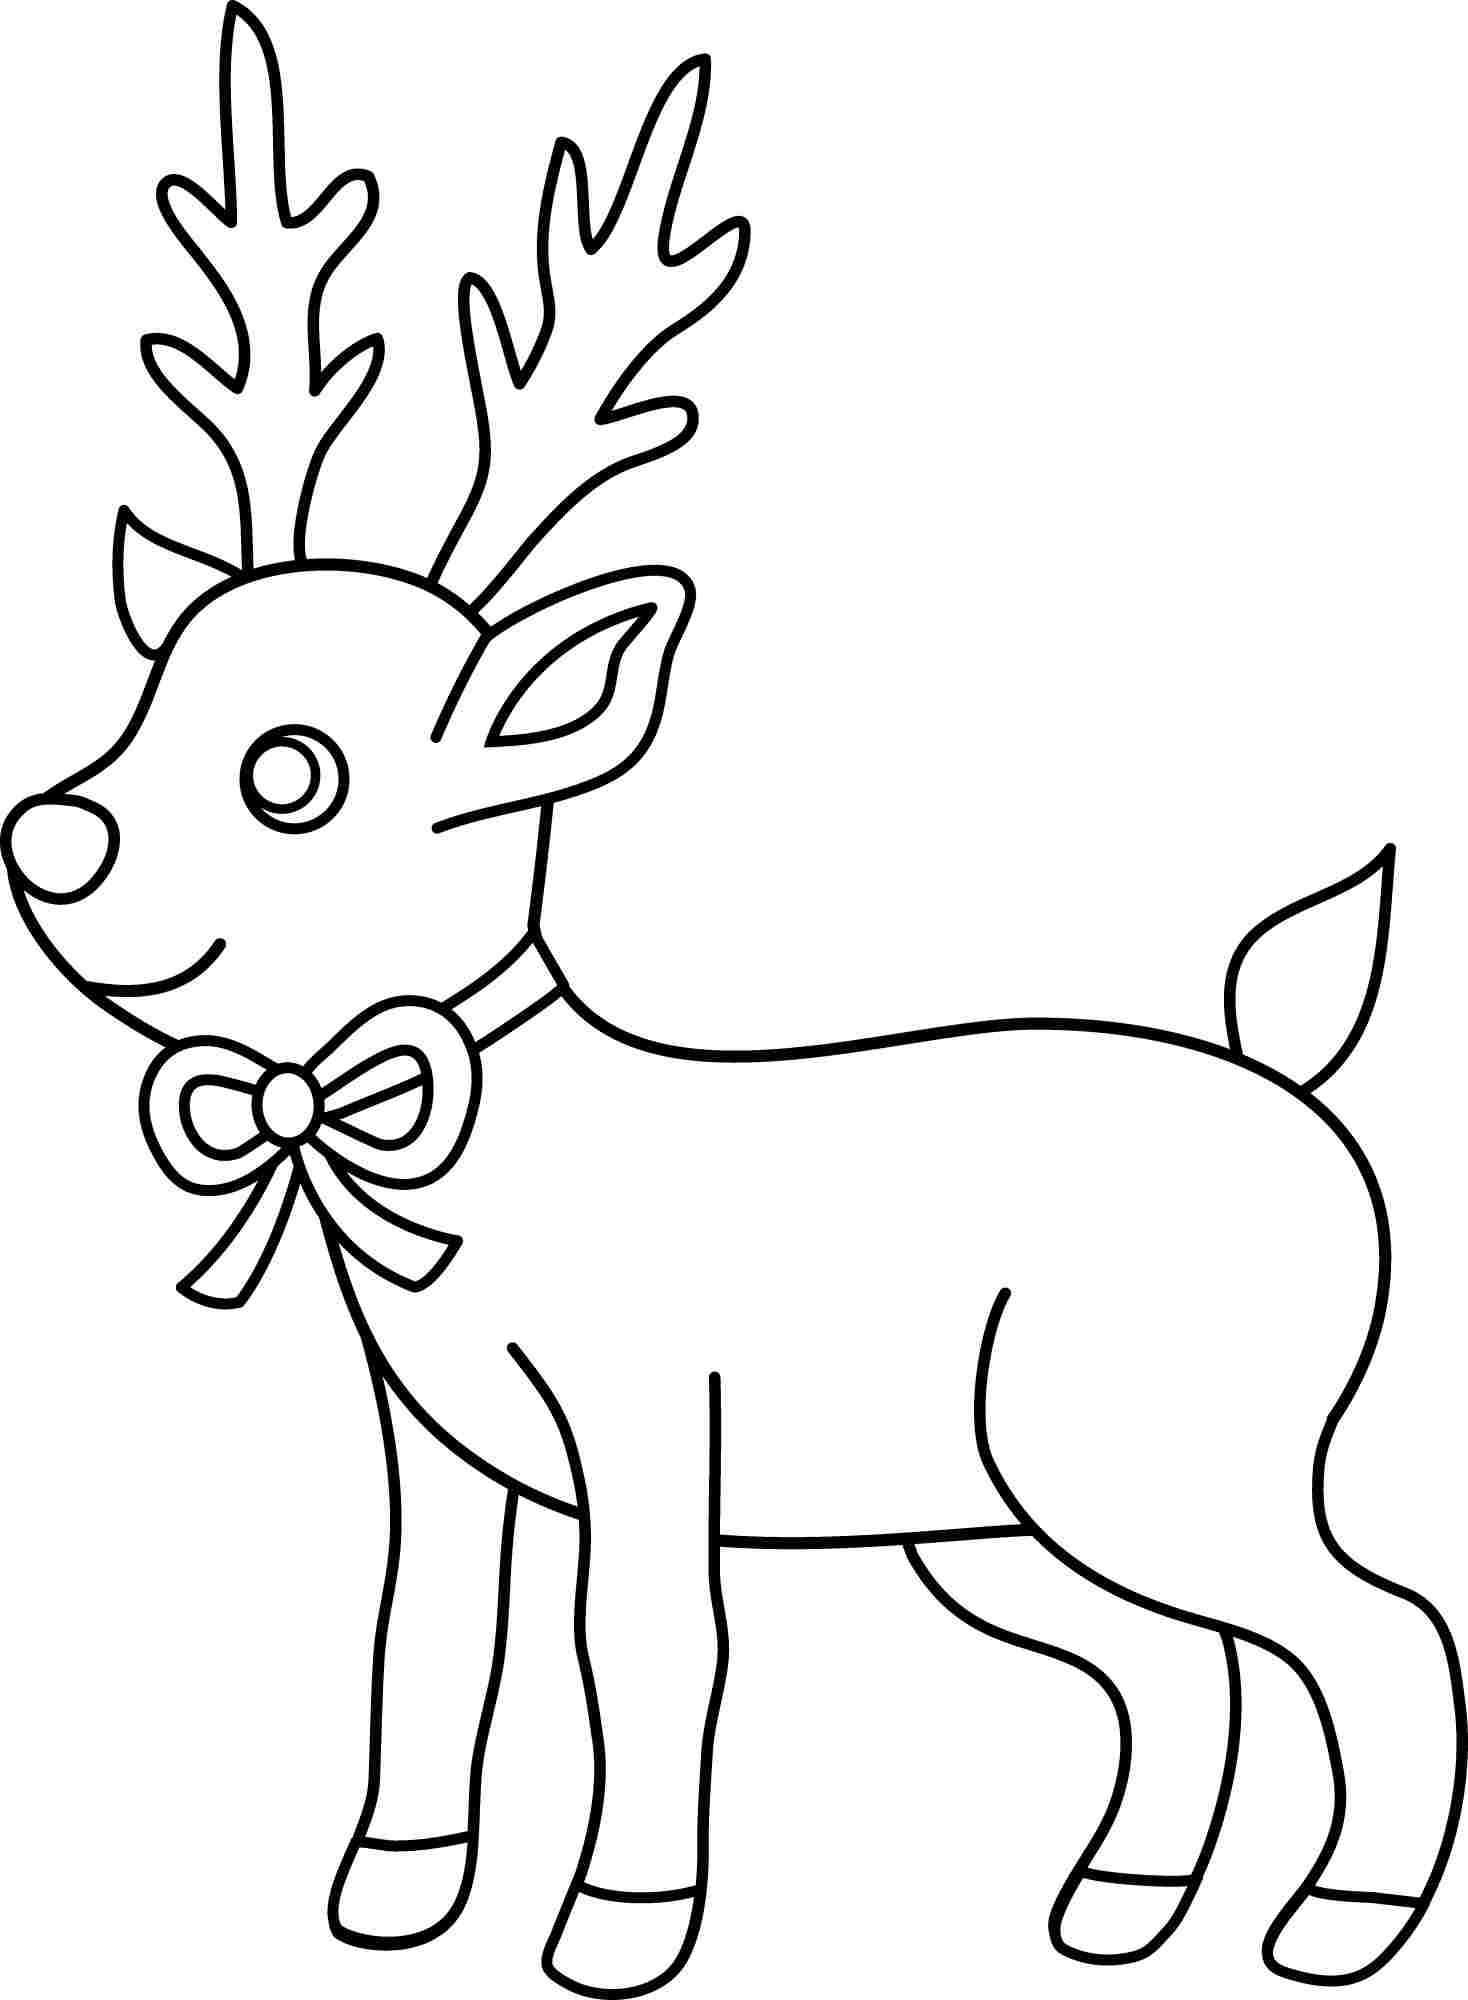 Santa And Baby Jesus Coloring Page With Christmas Pages For Kids Has Ornaments Id